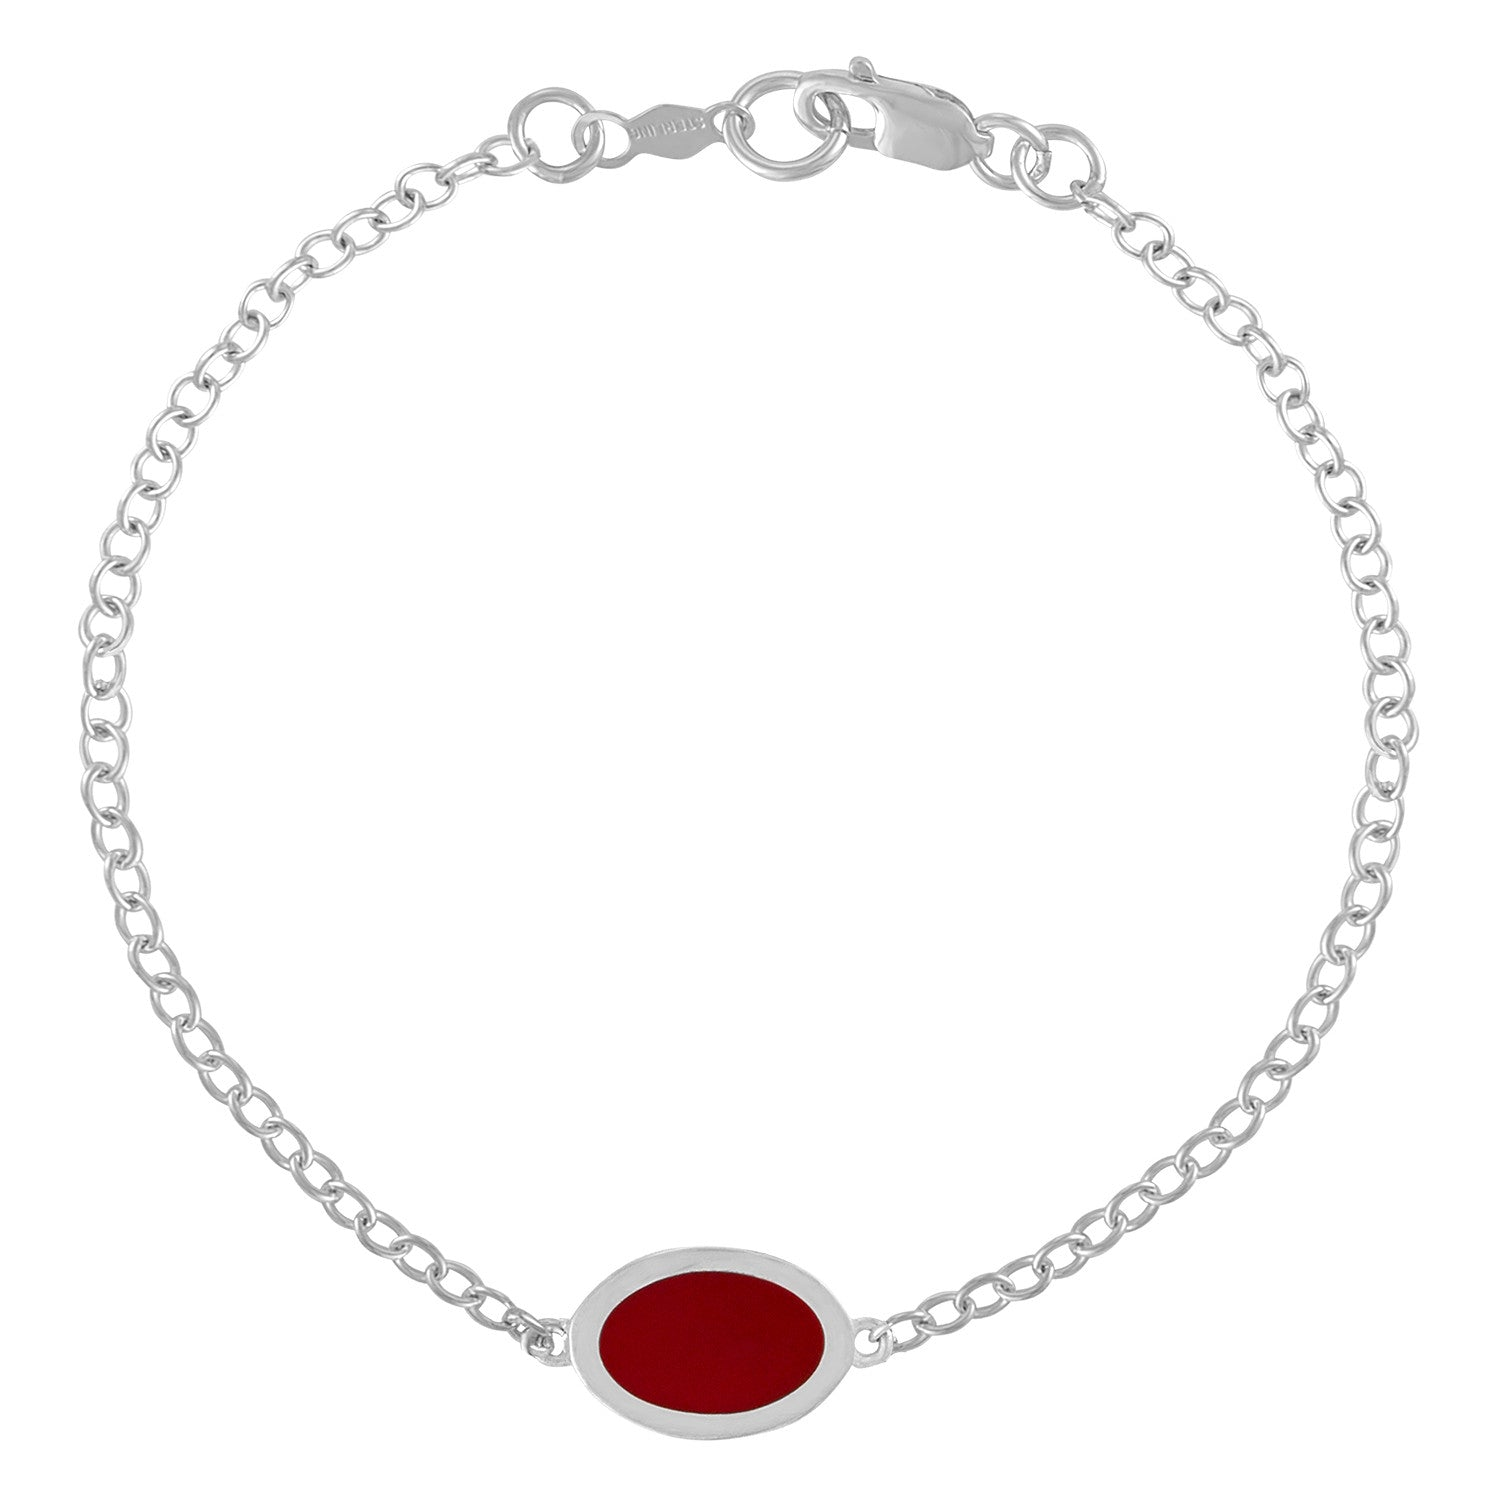 oval red enameled charm on delicate chain bracelet